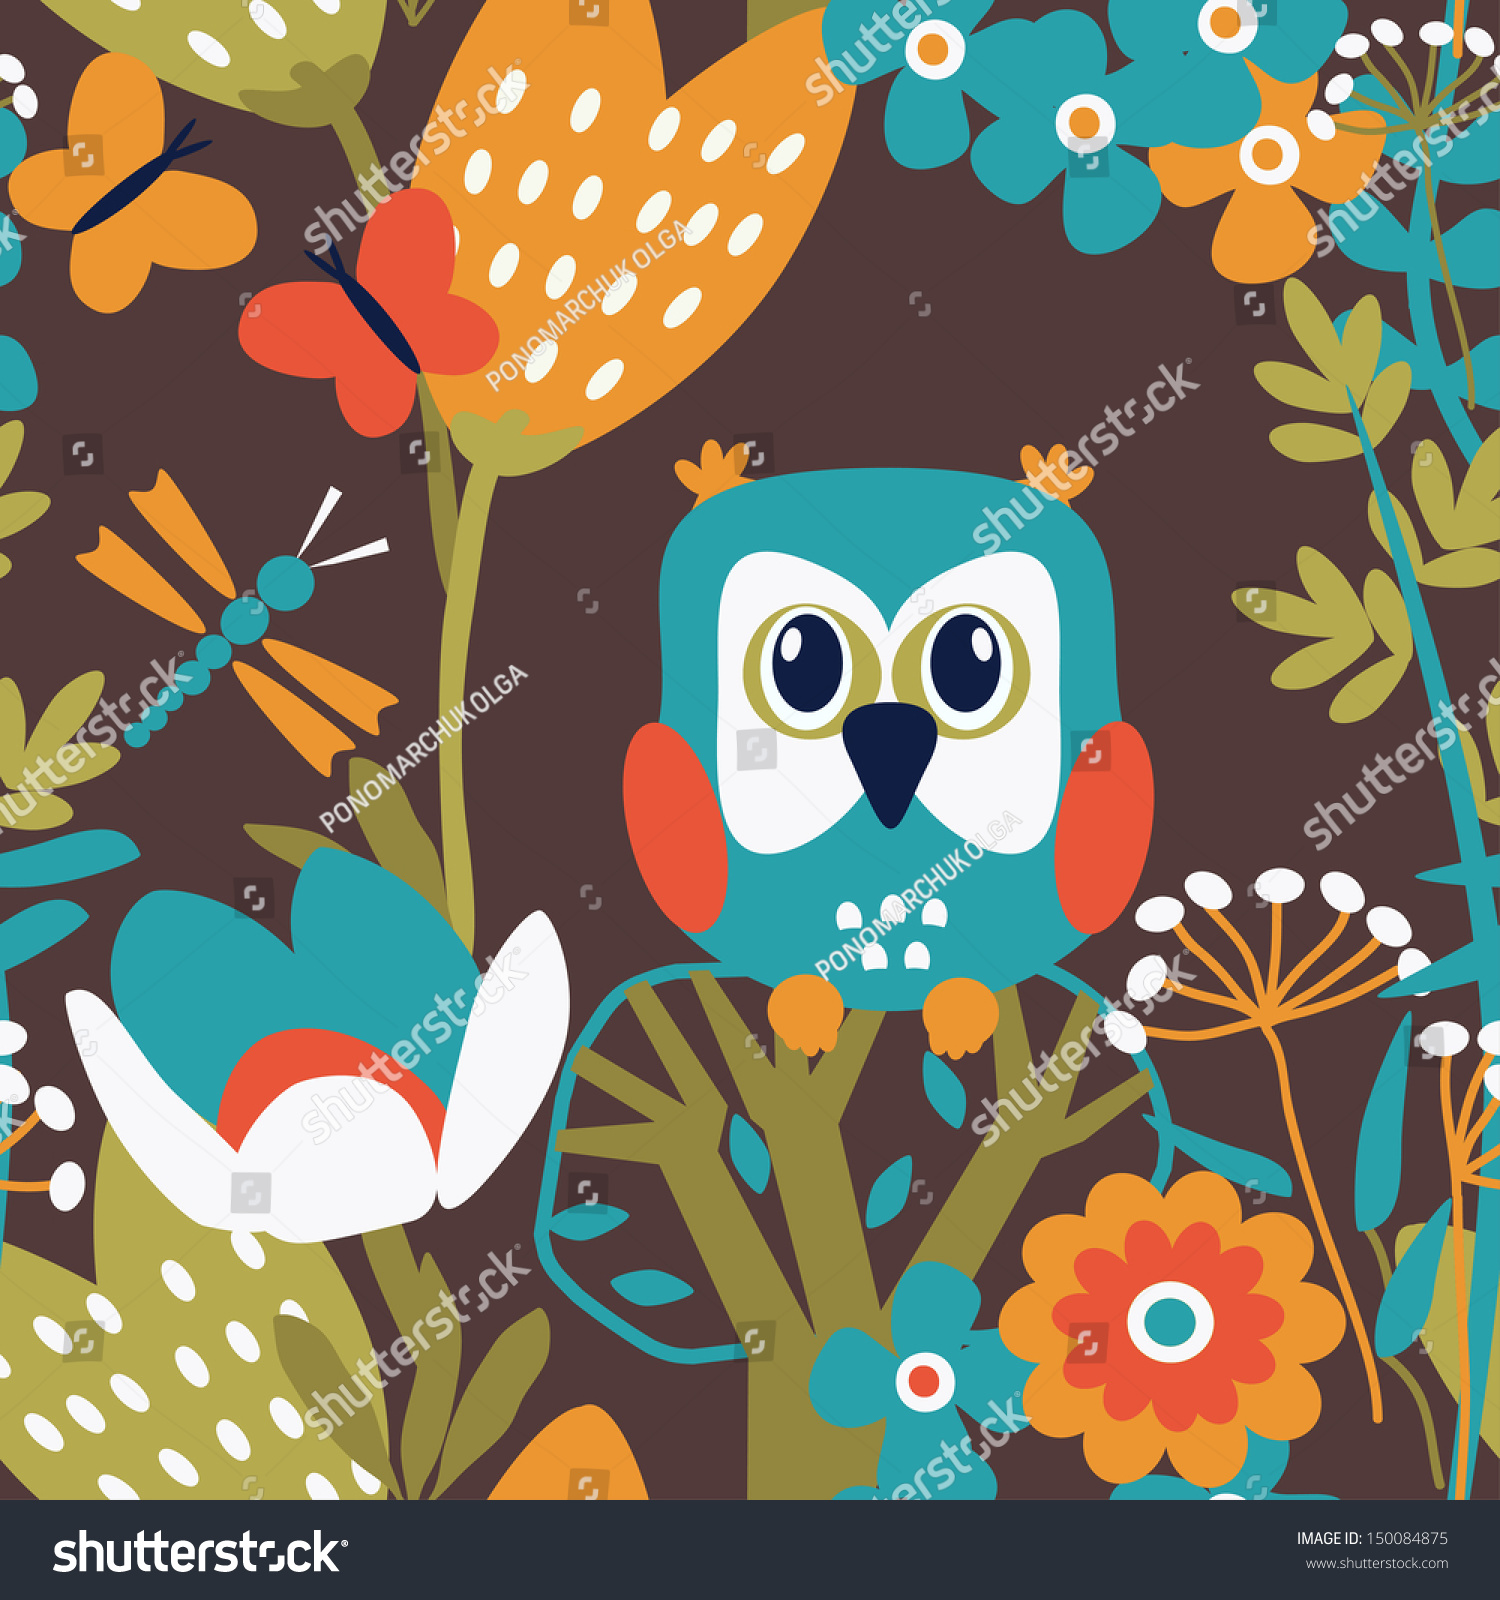 background wallpaper with birds and flowers seamless pattern can